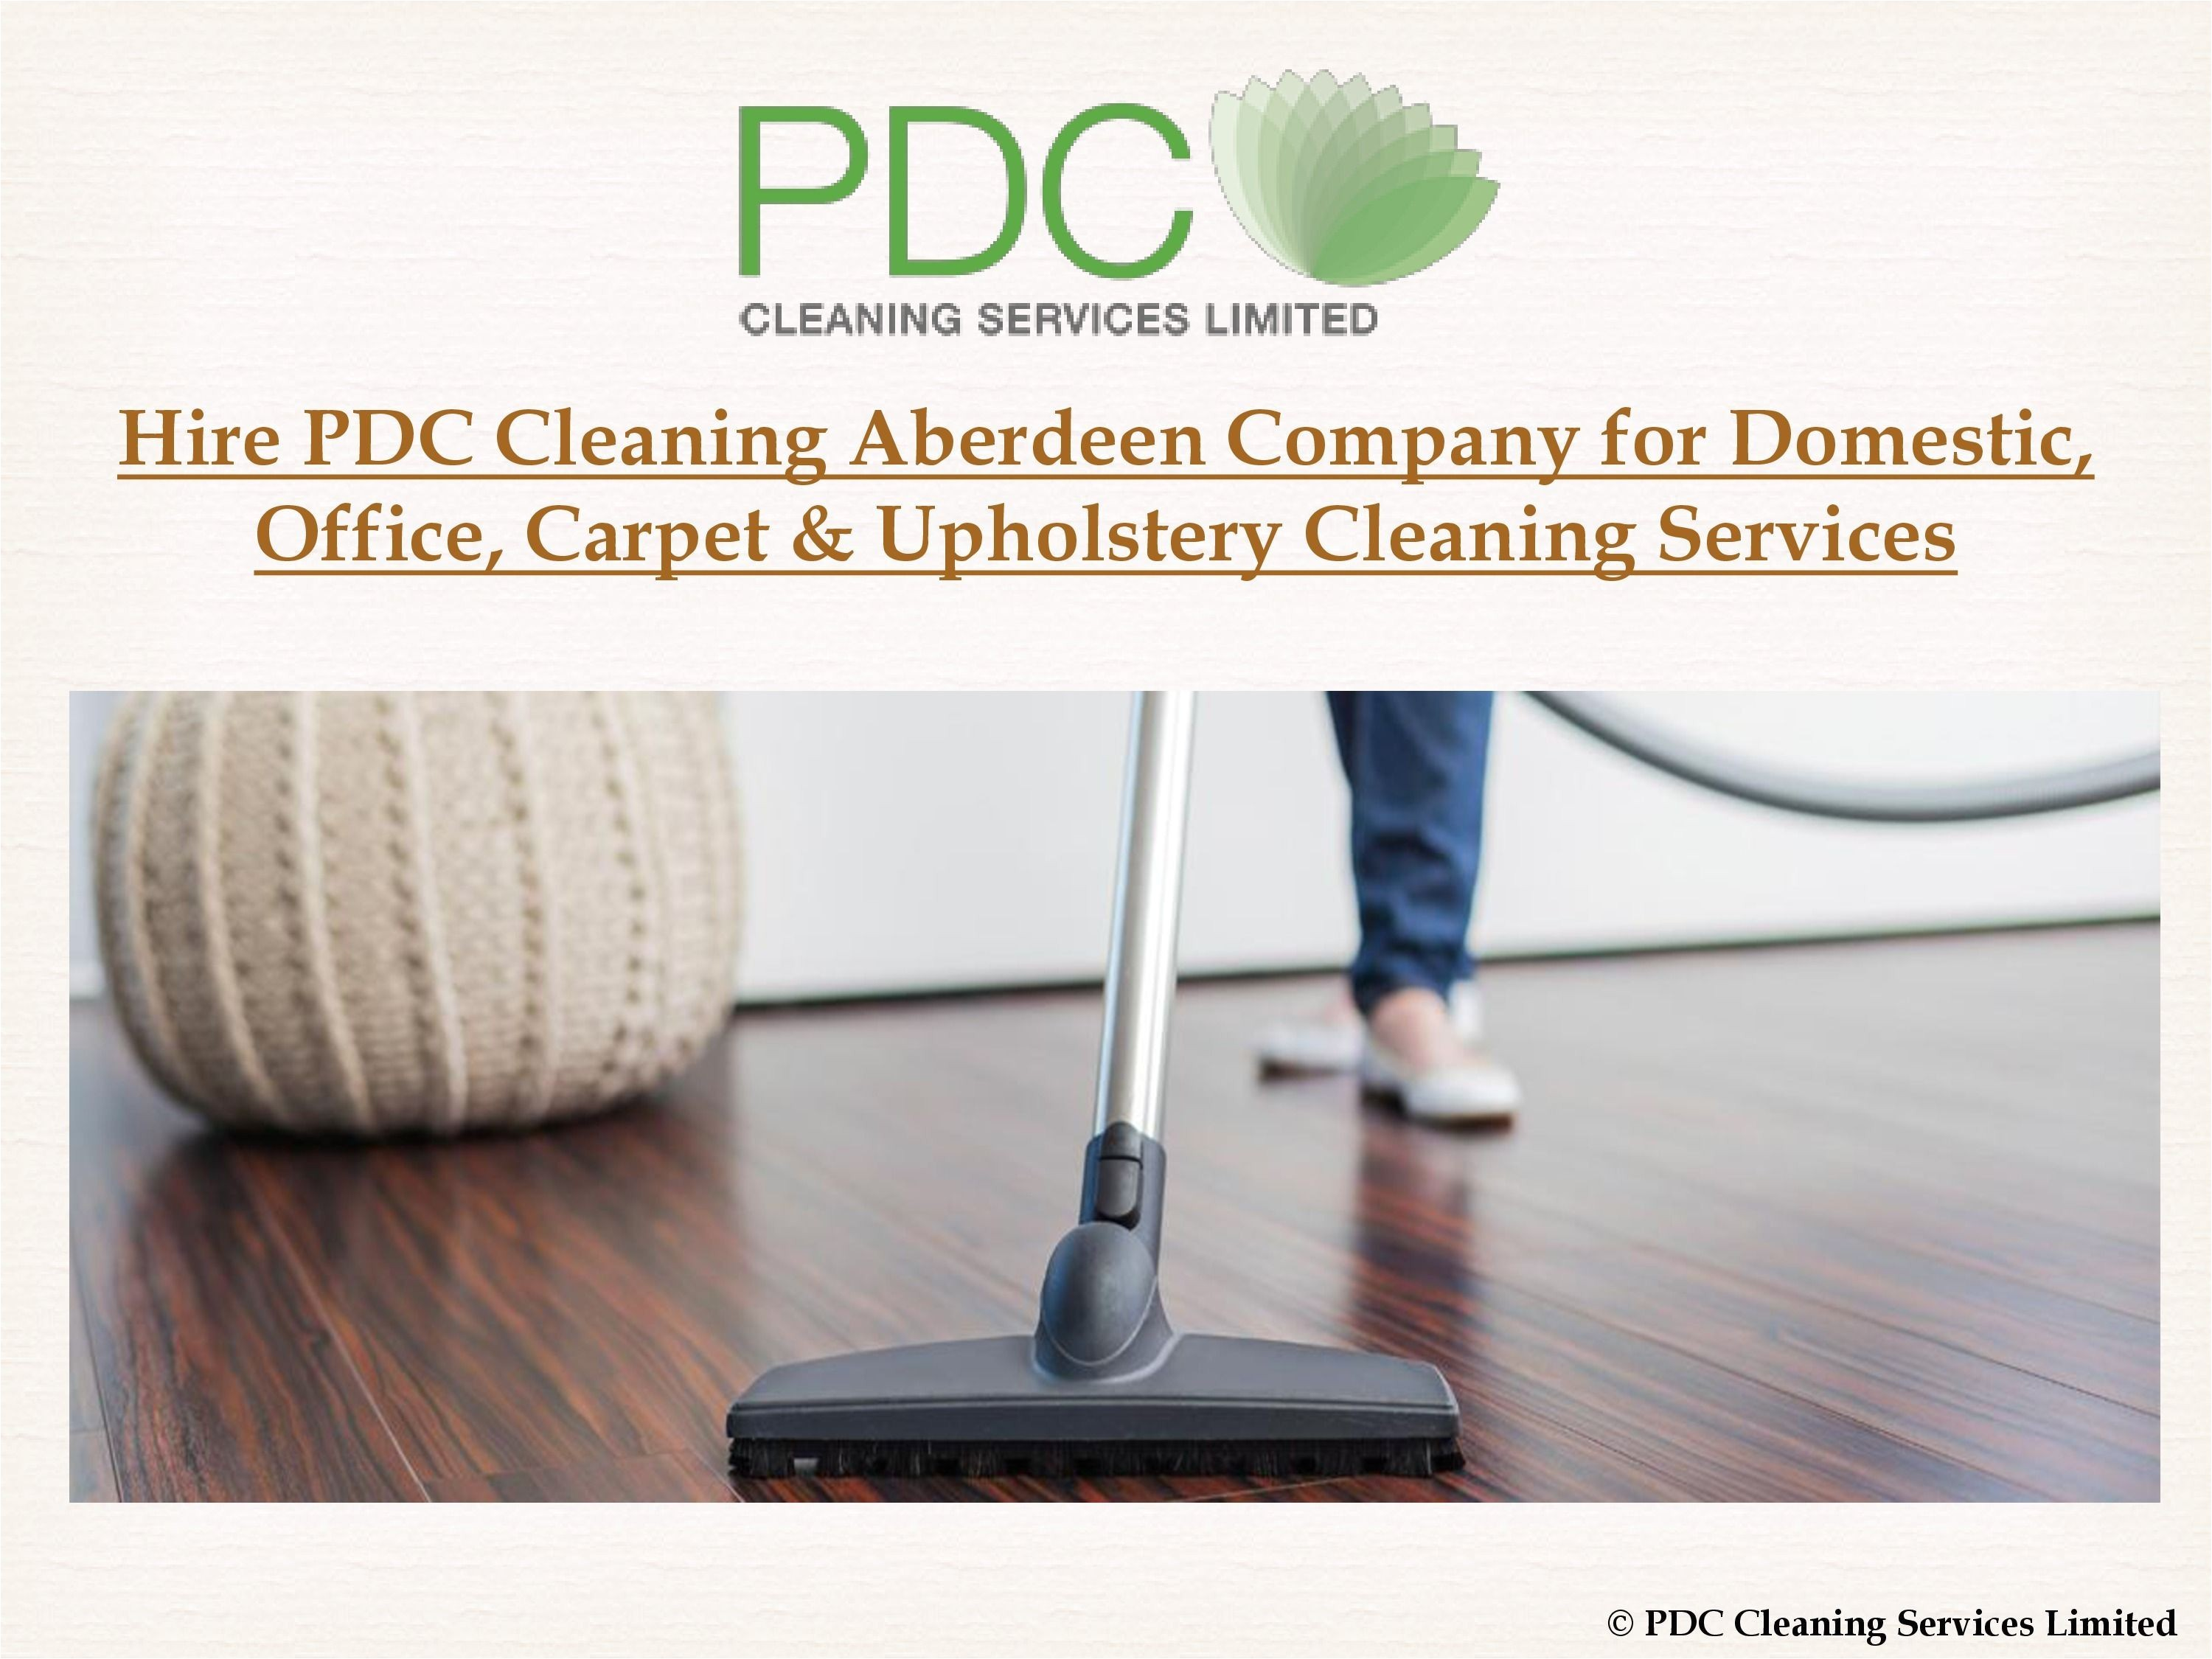 Carpet Cleaner Rental Bluffton Sc A Awesome Bluffton Sc Carpet Cleaners